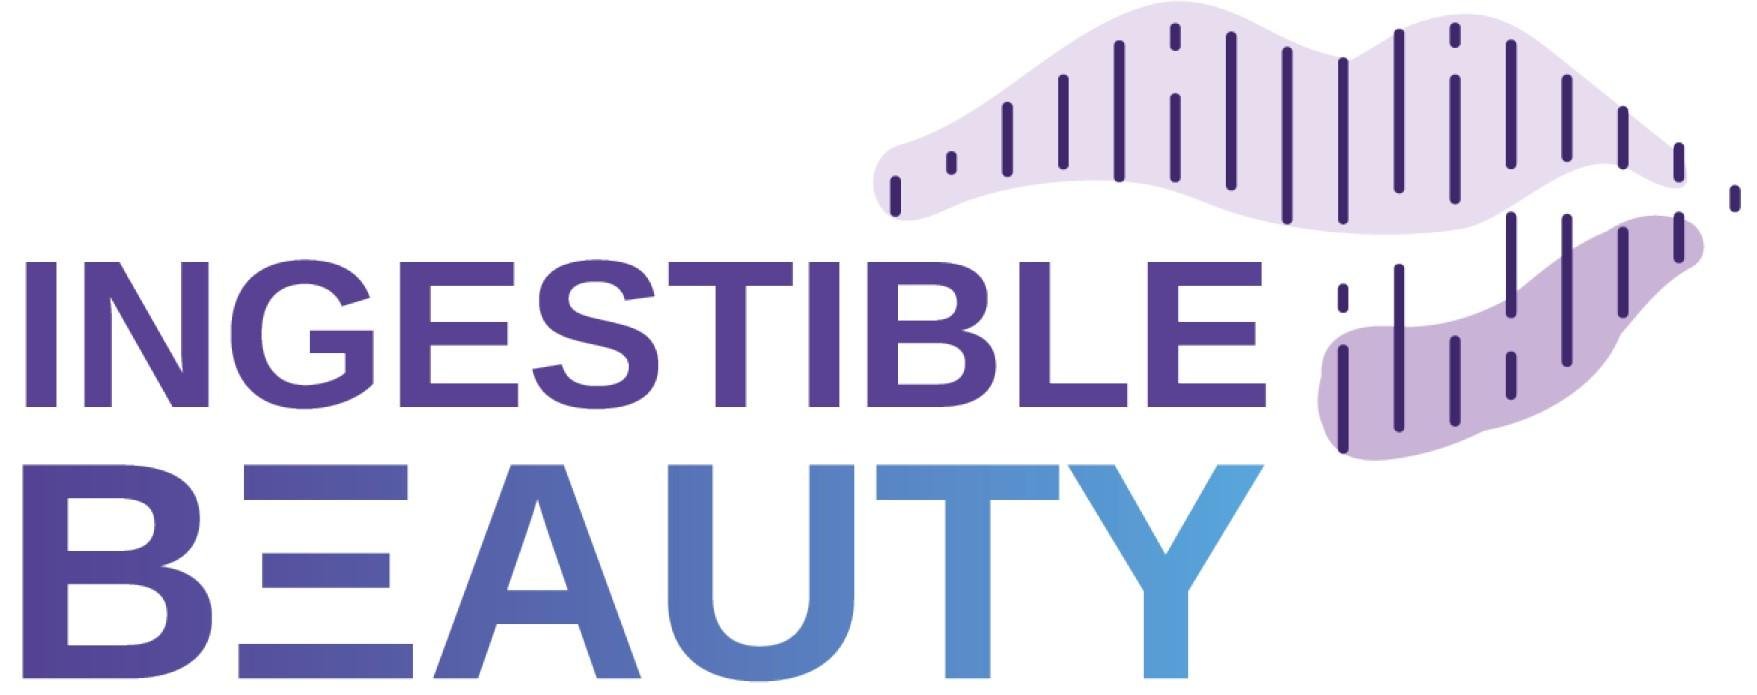 Ingestible Beauty Summit USA